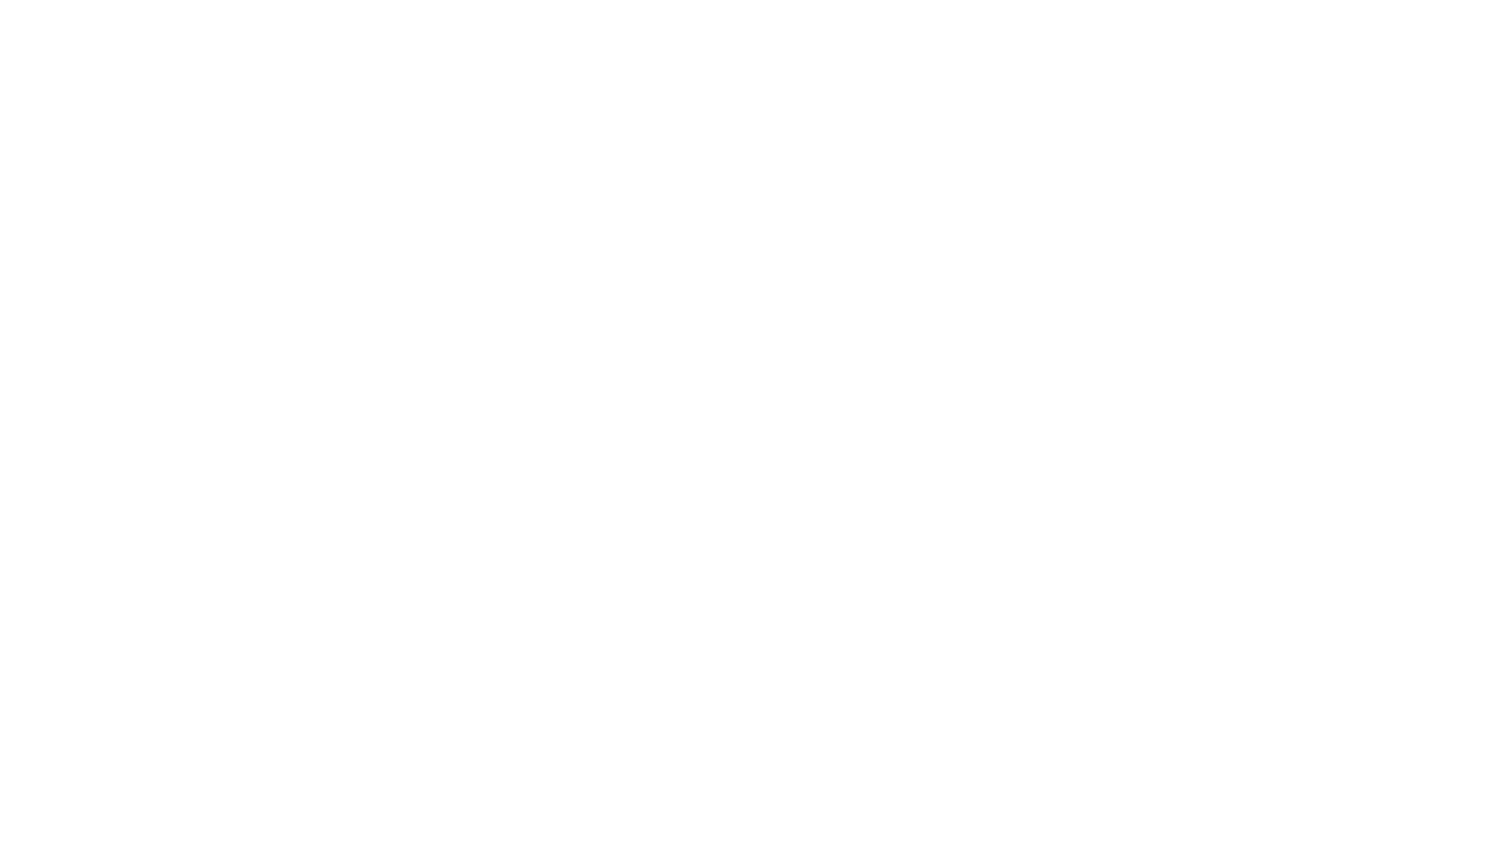 The Official Site of Tony Sutherland